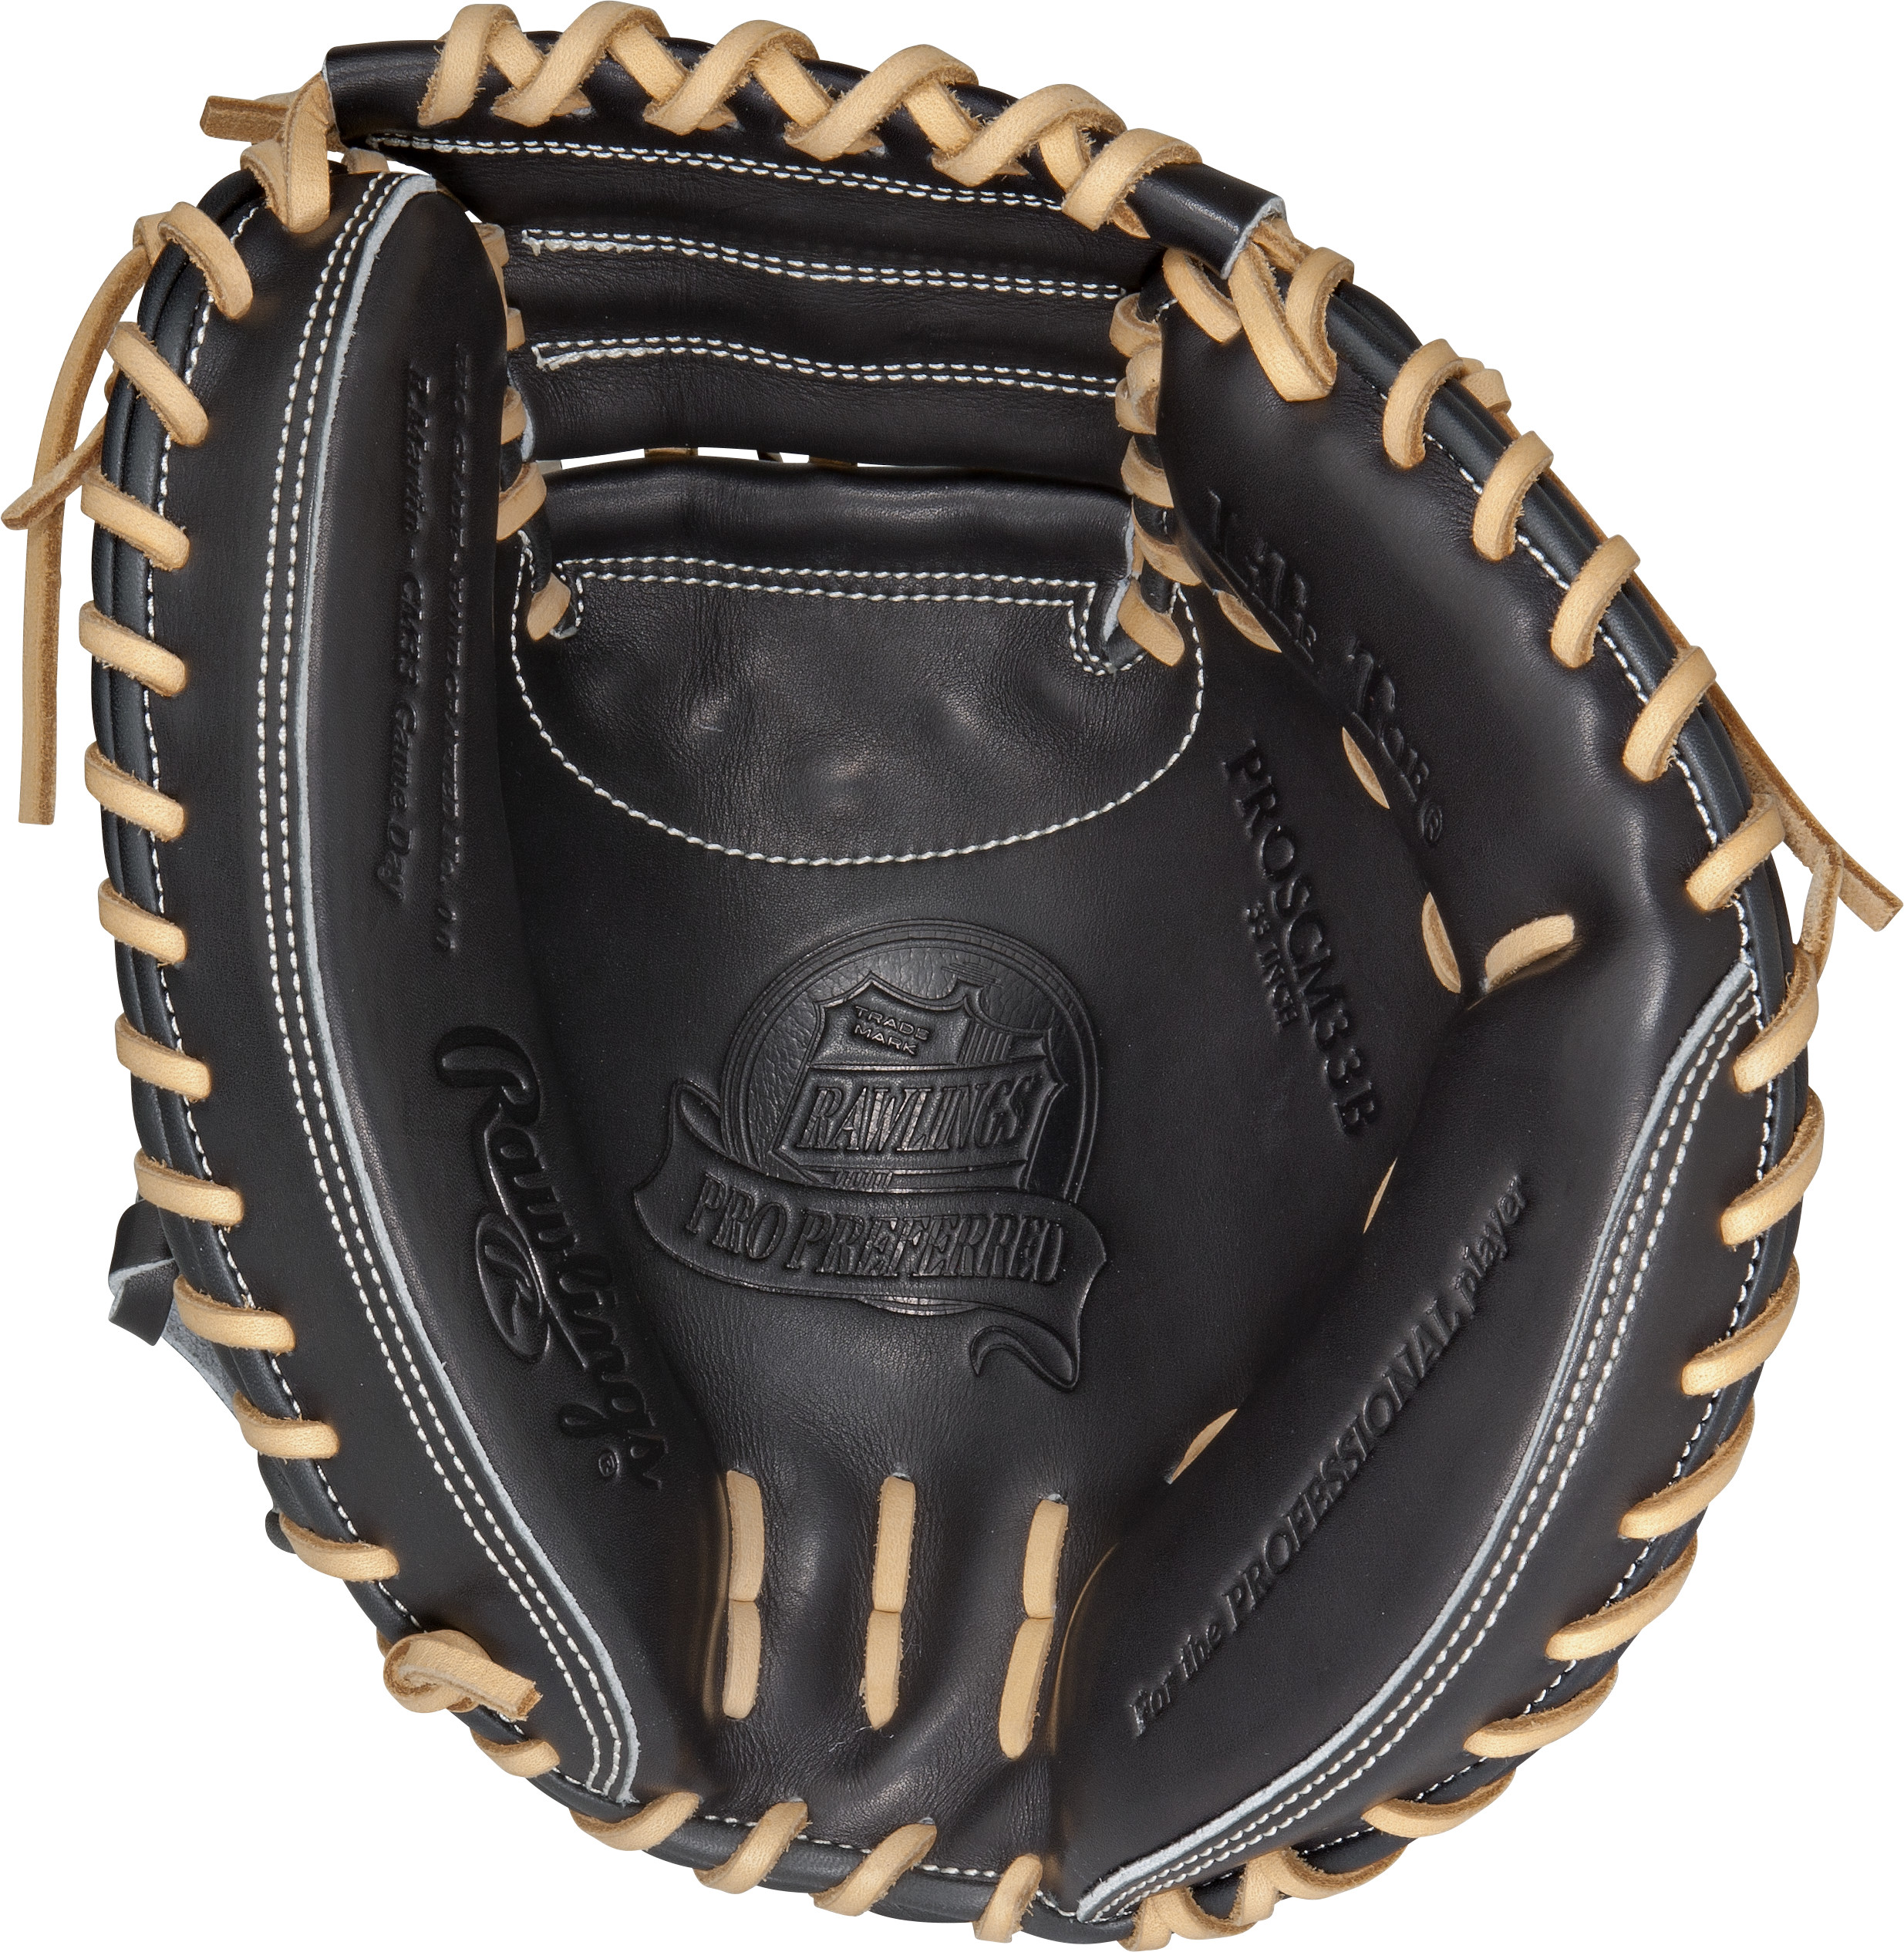 http://www.bestbatdeals.com/images/gloves/rawlings/PROSCM33B_palm.jpg